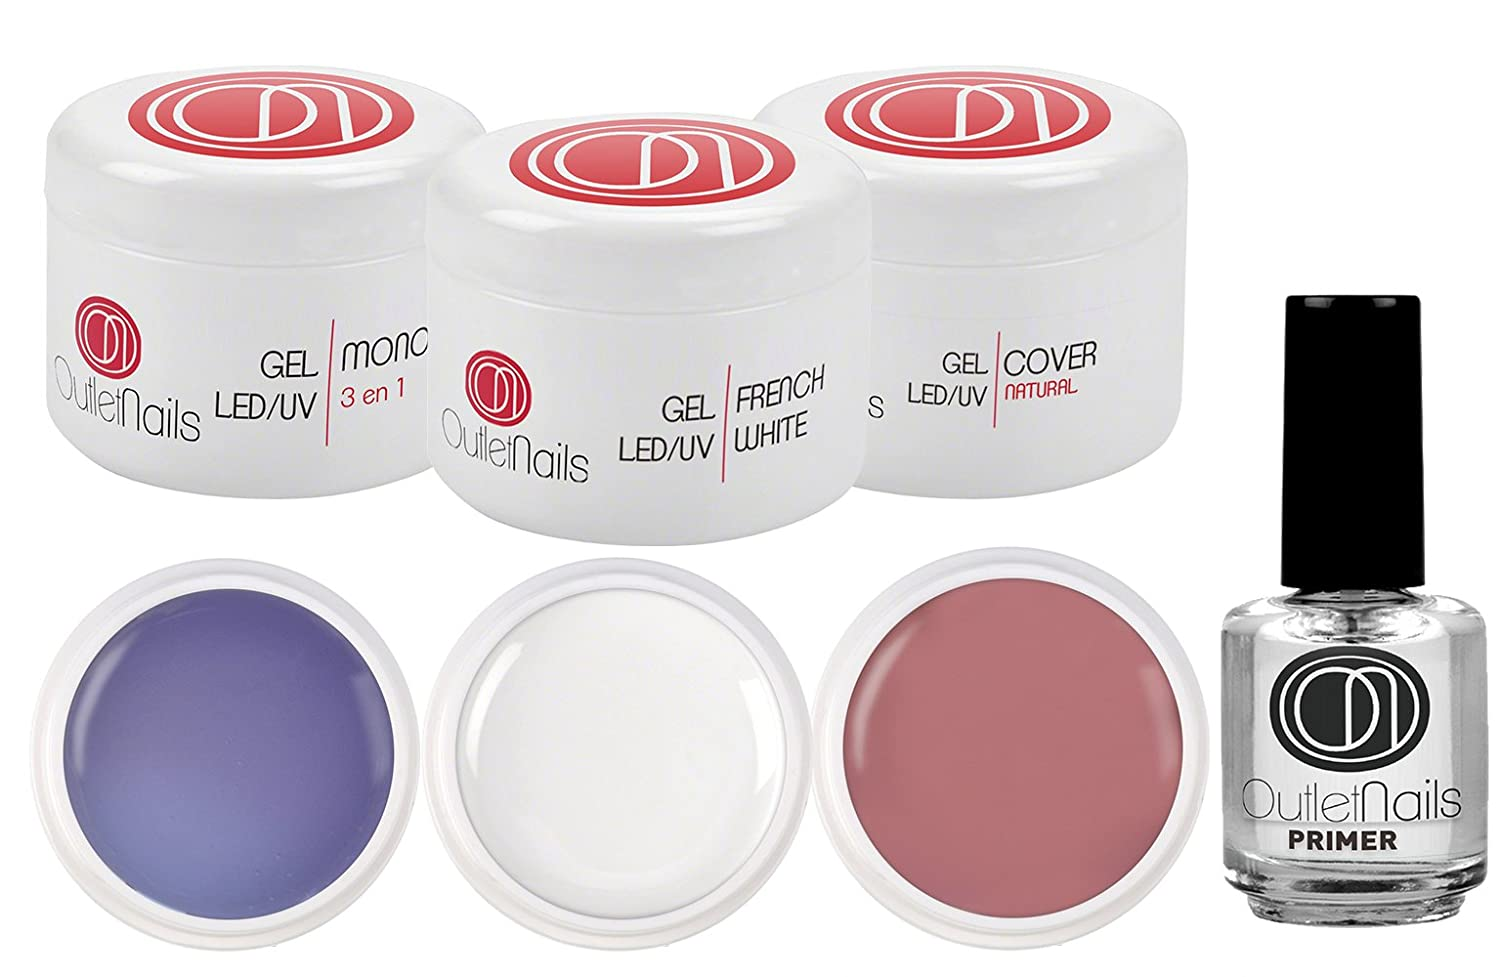 Kit de UV Gel 3 Geles de 15ml + Primer 15ml para uñas de gel / 1 x UV/LED Gel 3 en 1 Trifasico + 1 x UV/LED Ge French Blanco + 1 Gel UV/LED Cover Natural + 1 Primer 15ml Ser Beauty S.L.